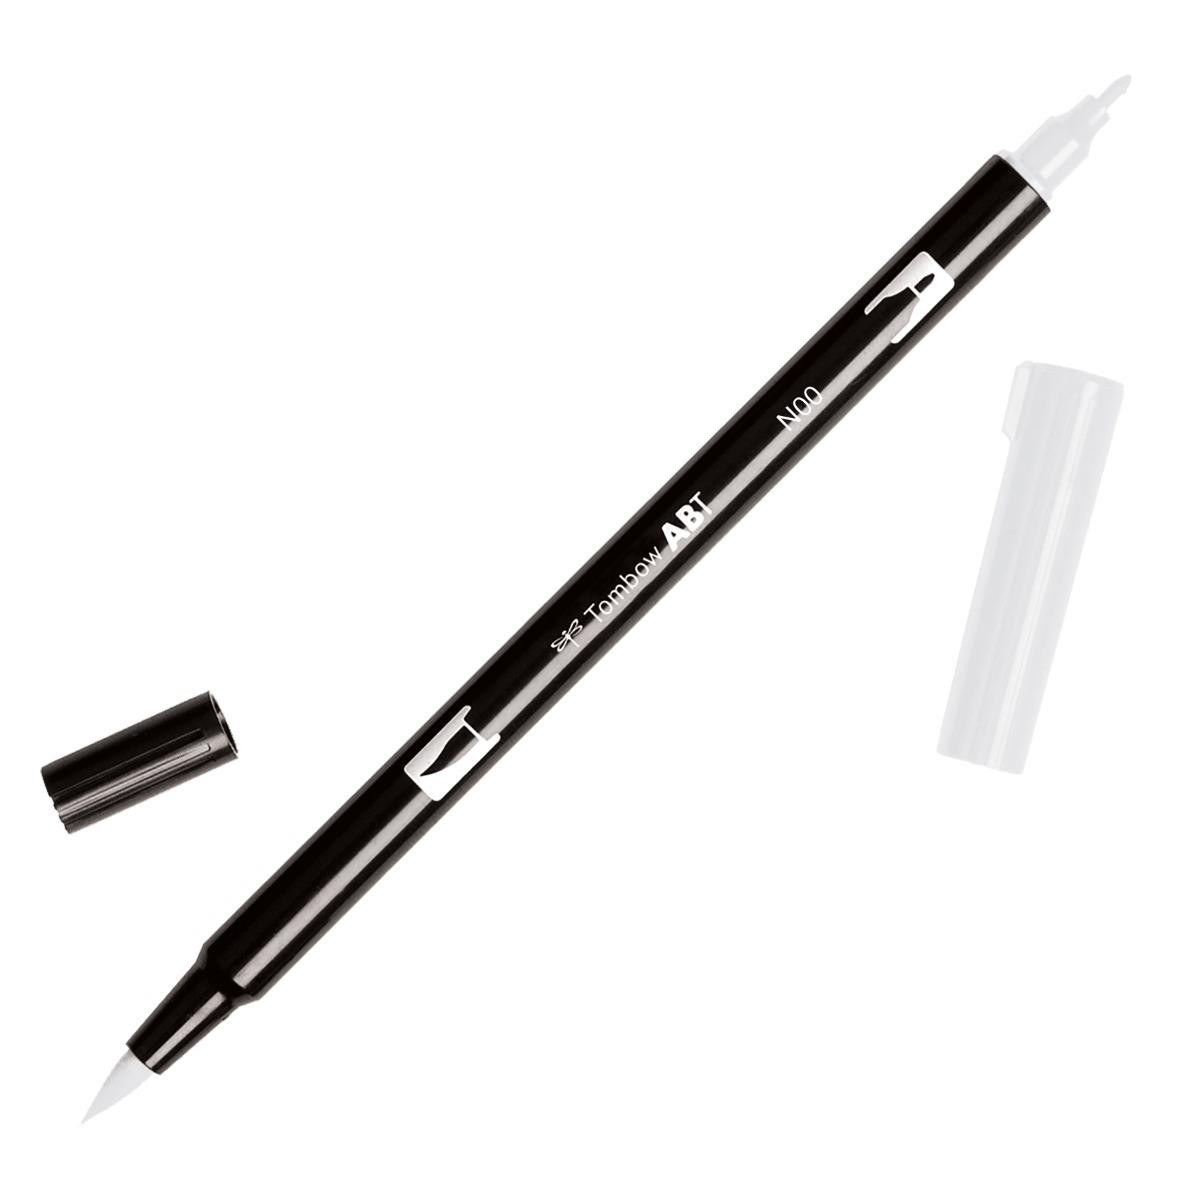 Colorless Blender (N00), Tombow Dual Brush Pens - 085014566452